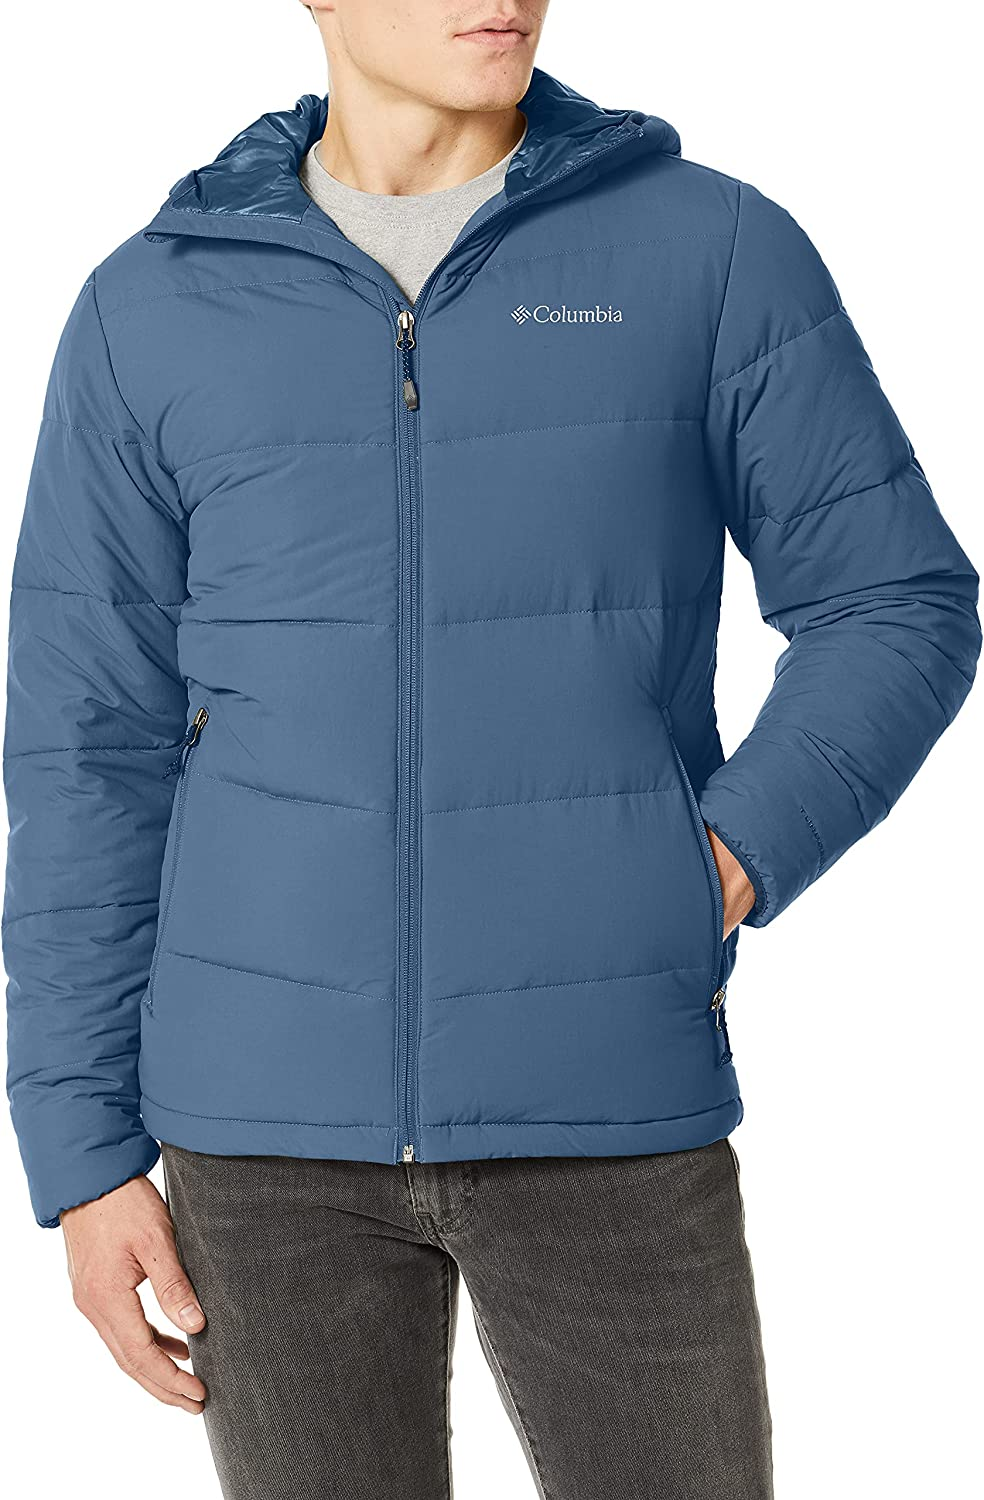 Max 57% OFF Columbia Men's Lone Fir 650 Jacket Hooded TurboDown Sale price